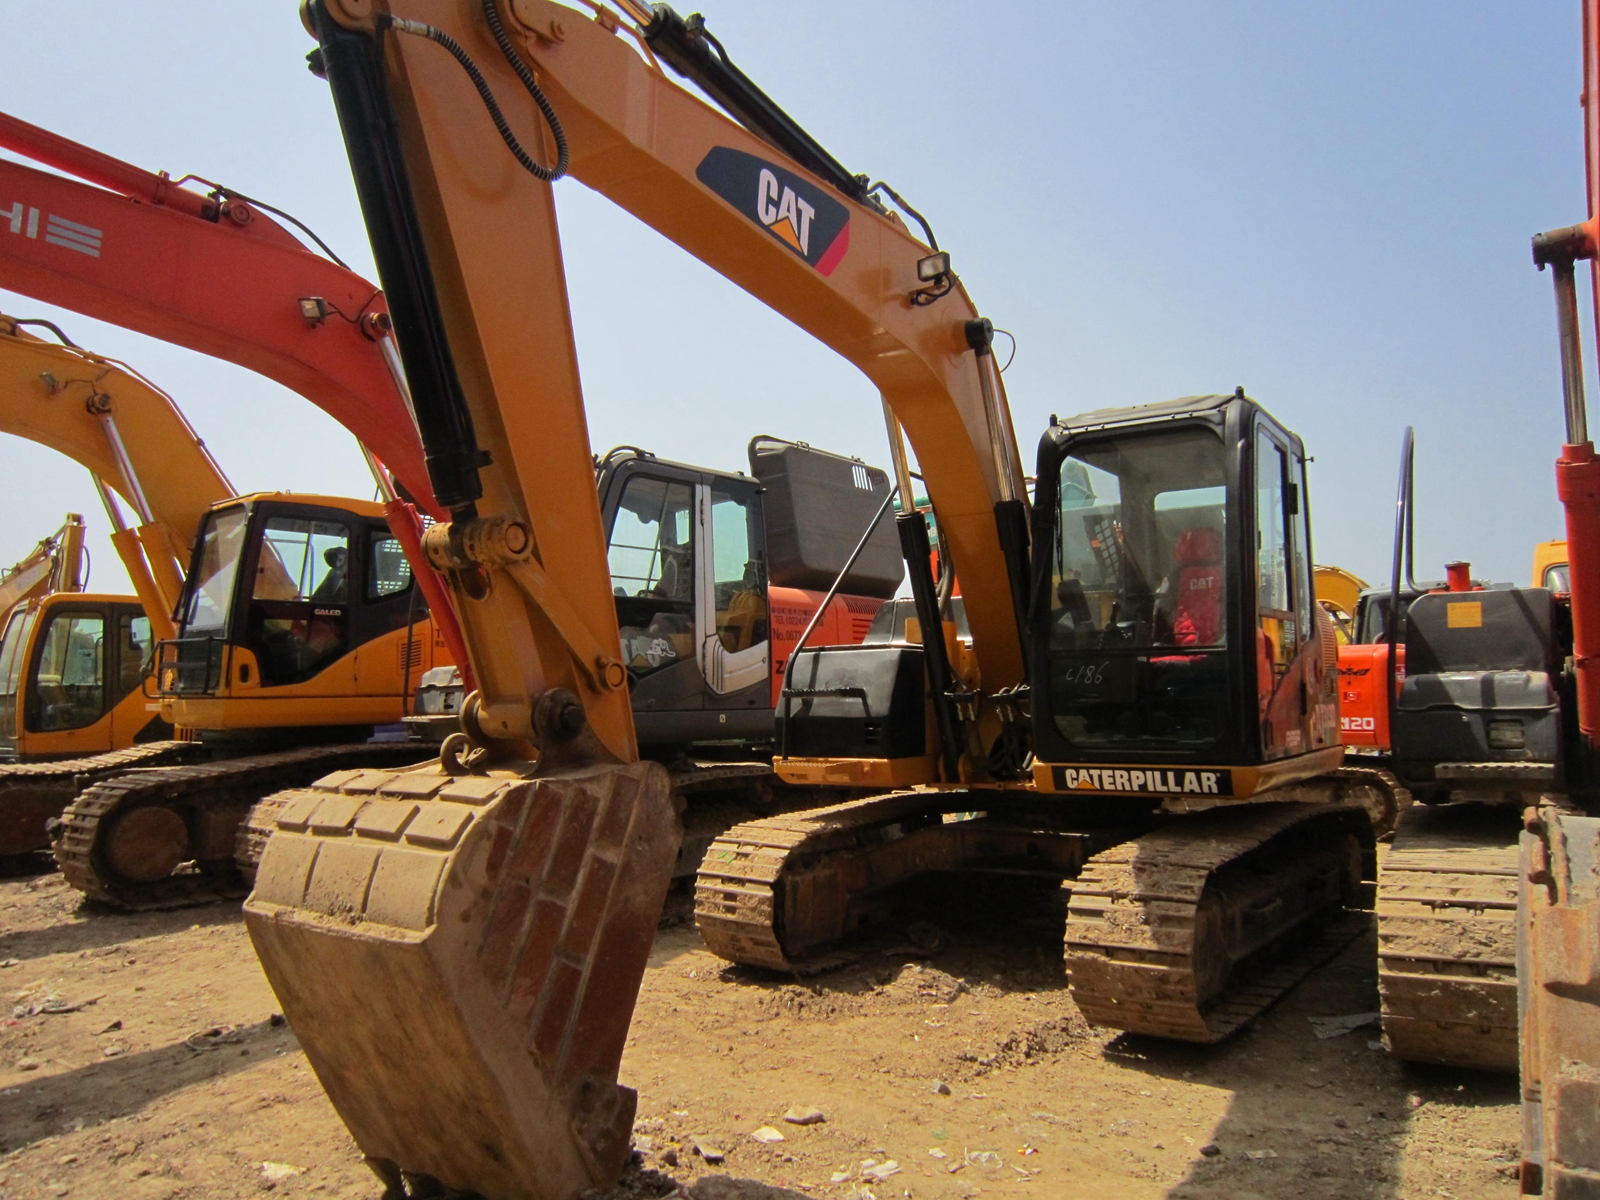 high quality and good condition Caterpillar 313d 315d 320d used cat 320D excavator 315d with good hours